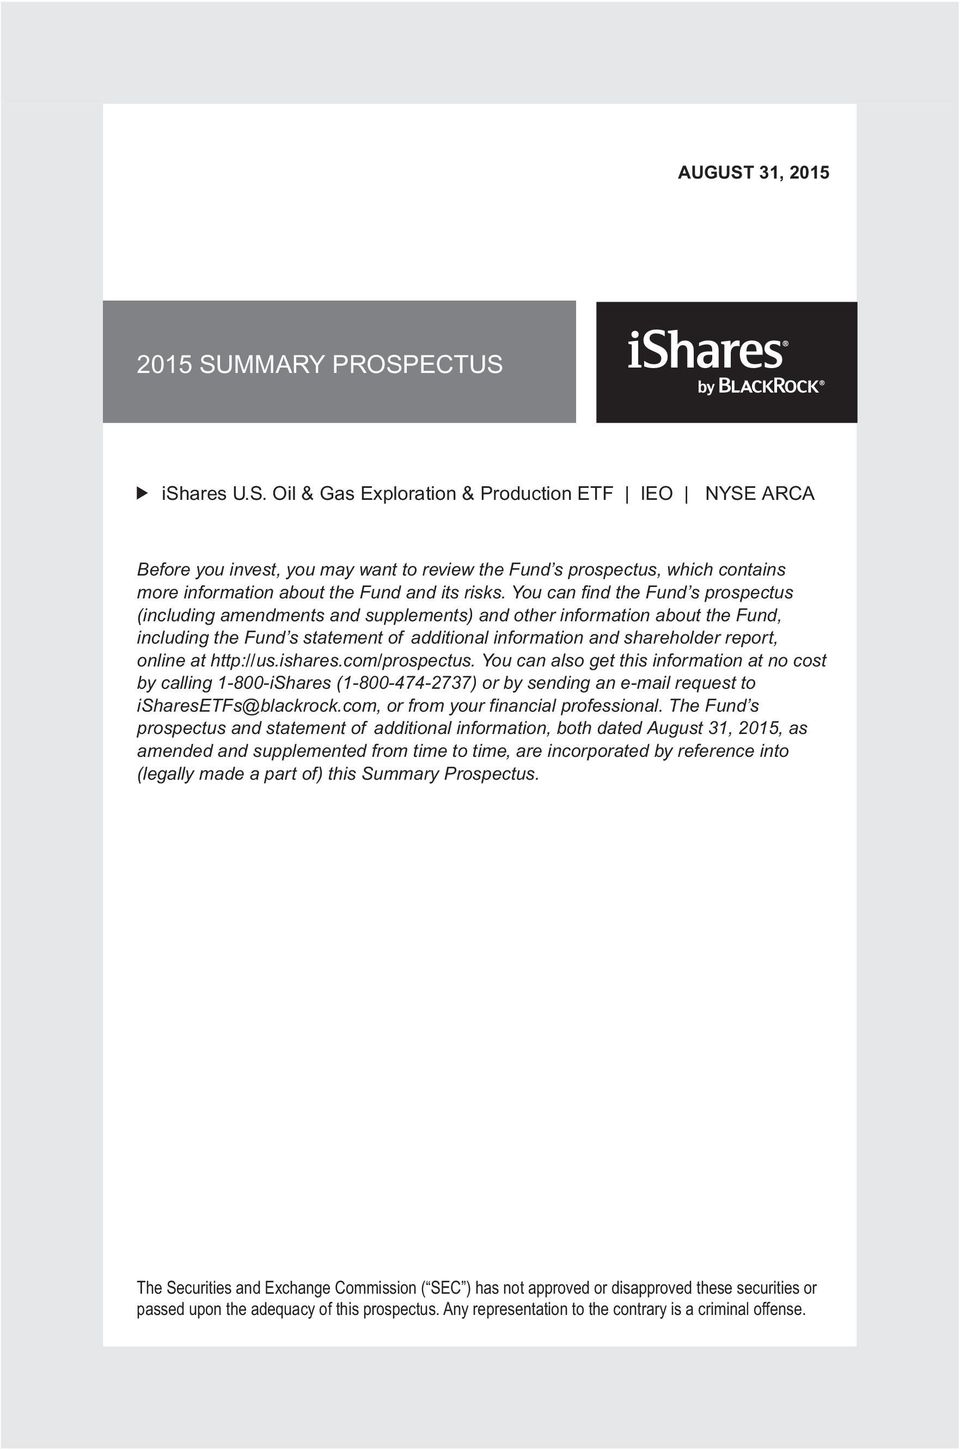 at http://us.ishares.com/prospectus. You can also get this information at no cost by calling 1-800-iShares (1-800-474-2737) or by sending an e-mail request to isharesetfs@blackrock.